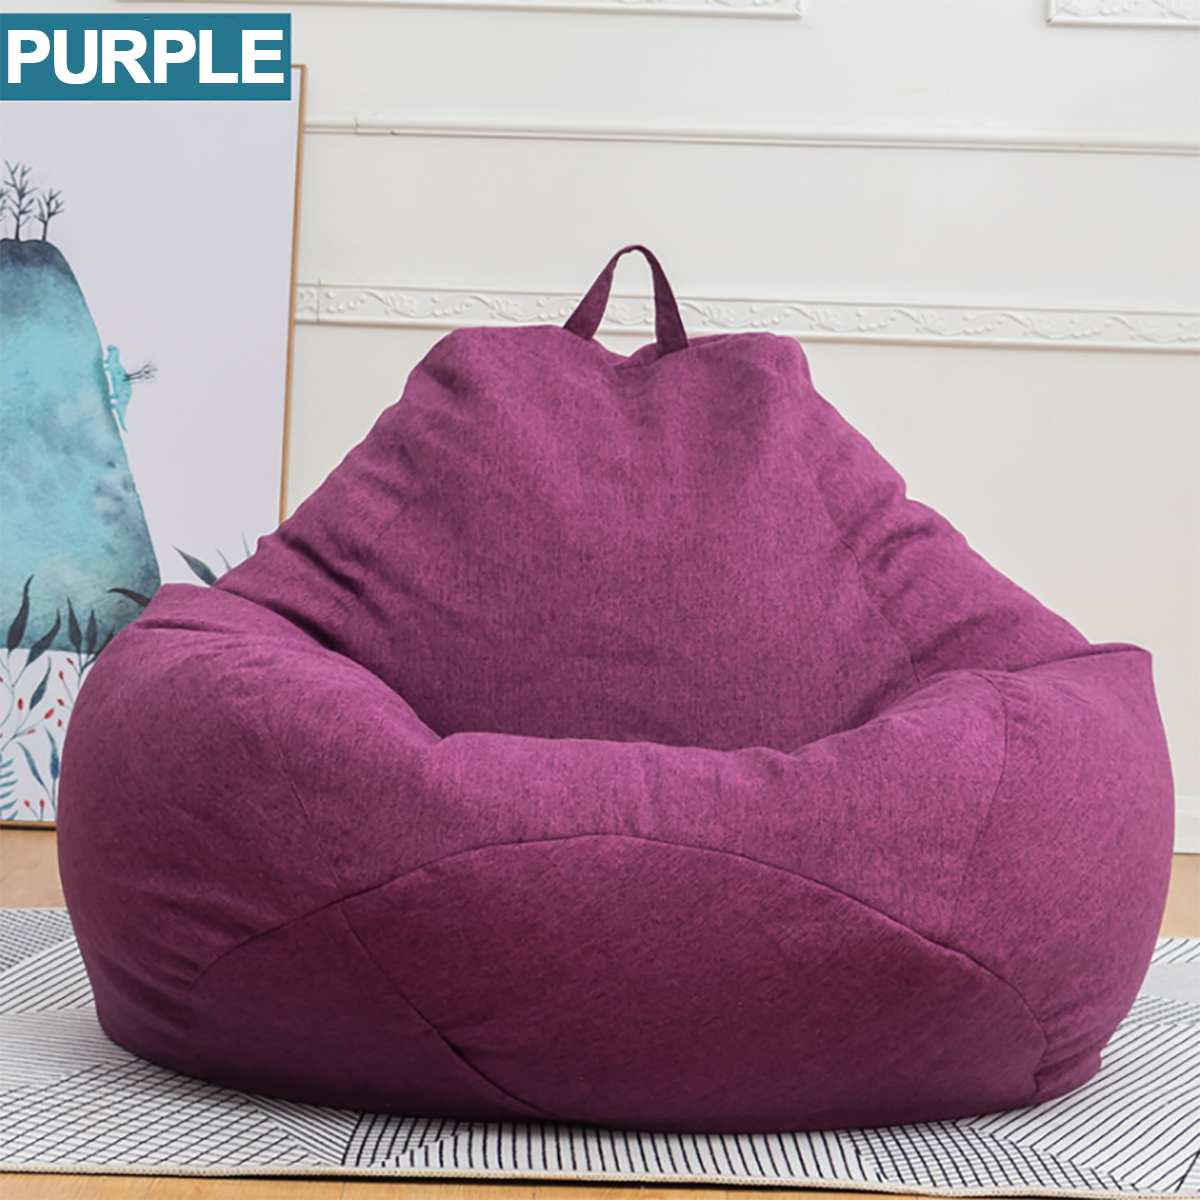 Miraculous Us 13 55 43 Off Green Lazy Beanbag Sofas Waterproof Stuffed Animal Storage Toy Bean Bag Solid Color Chair Cover Beanbag Sofas Without Lining In Bean Uwap Interior Chair Design Uwaporg